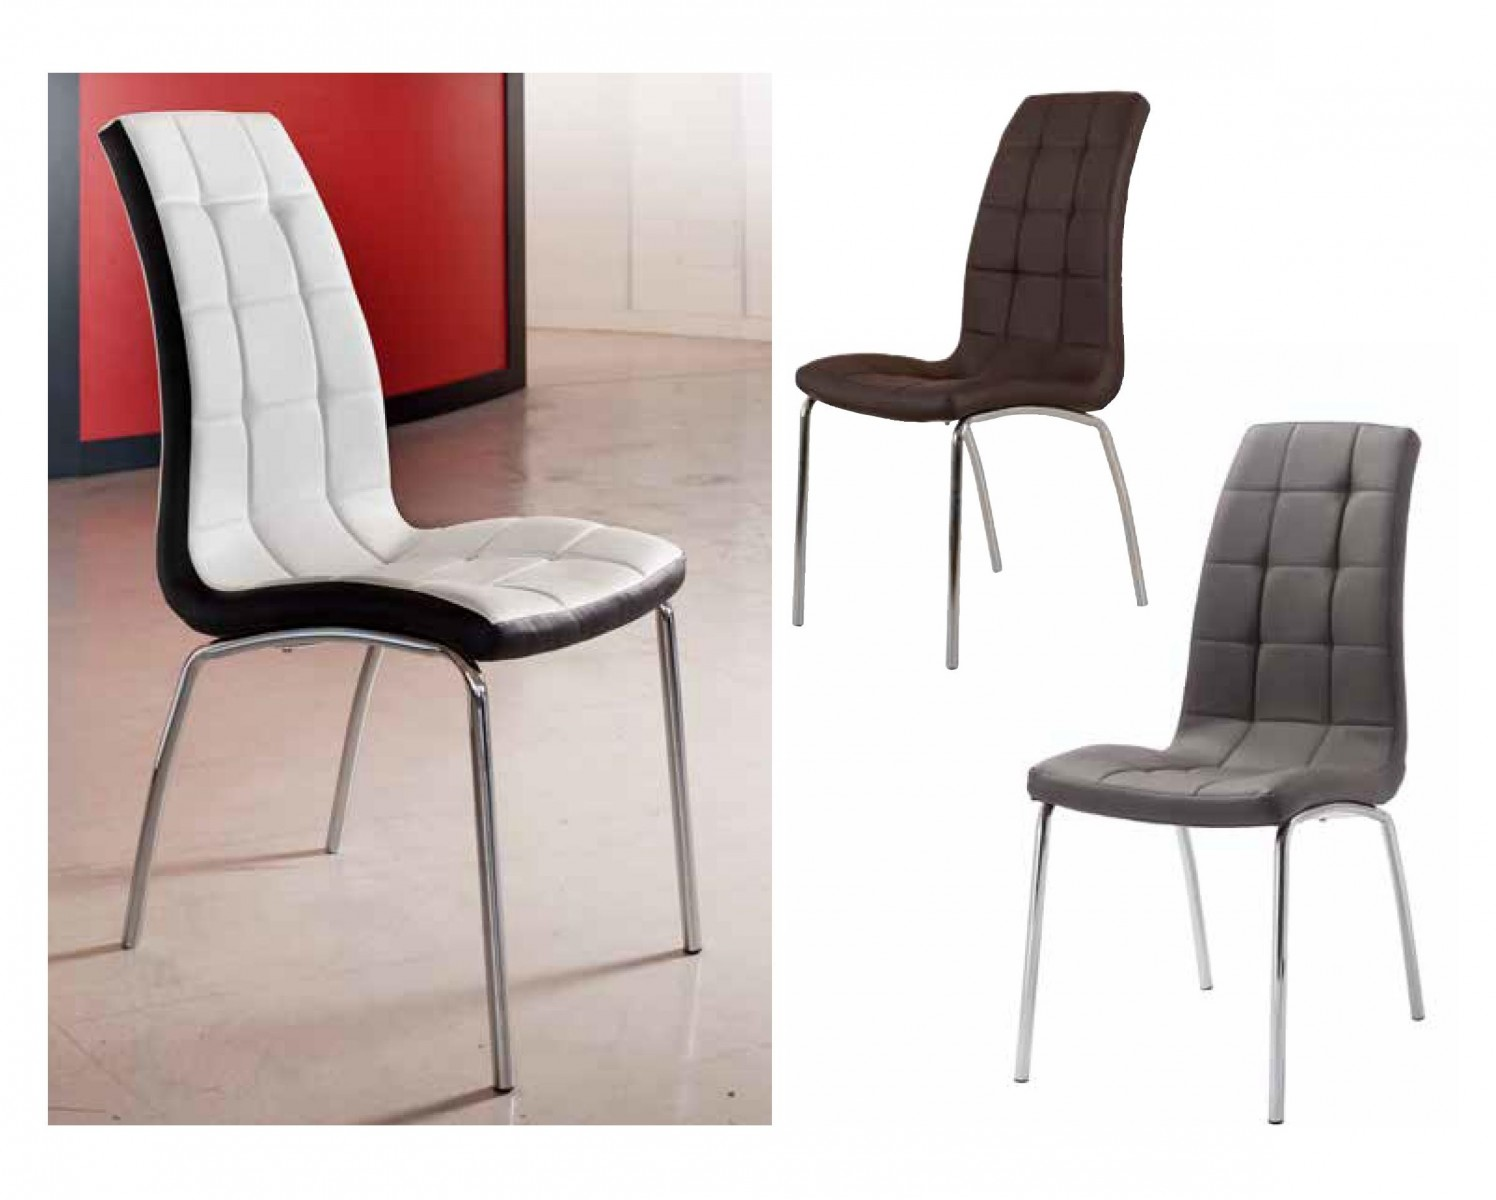 Sillas modernas de diseo beautiful combo eames sillas for Sillas italianas modernas